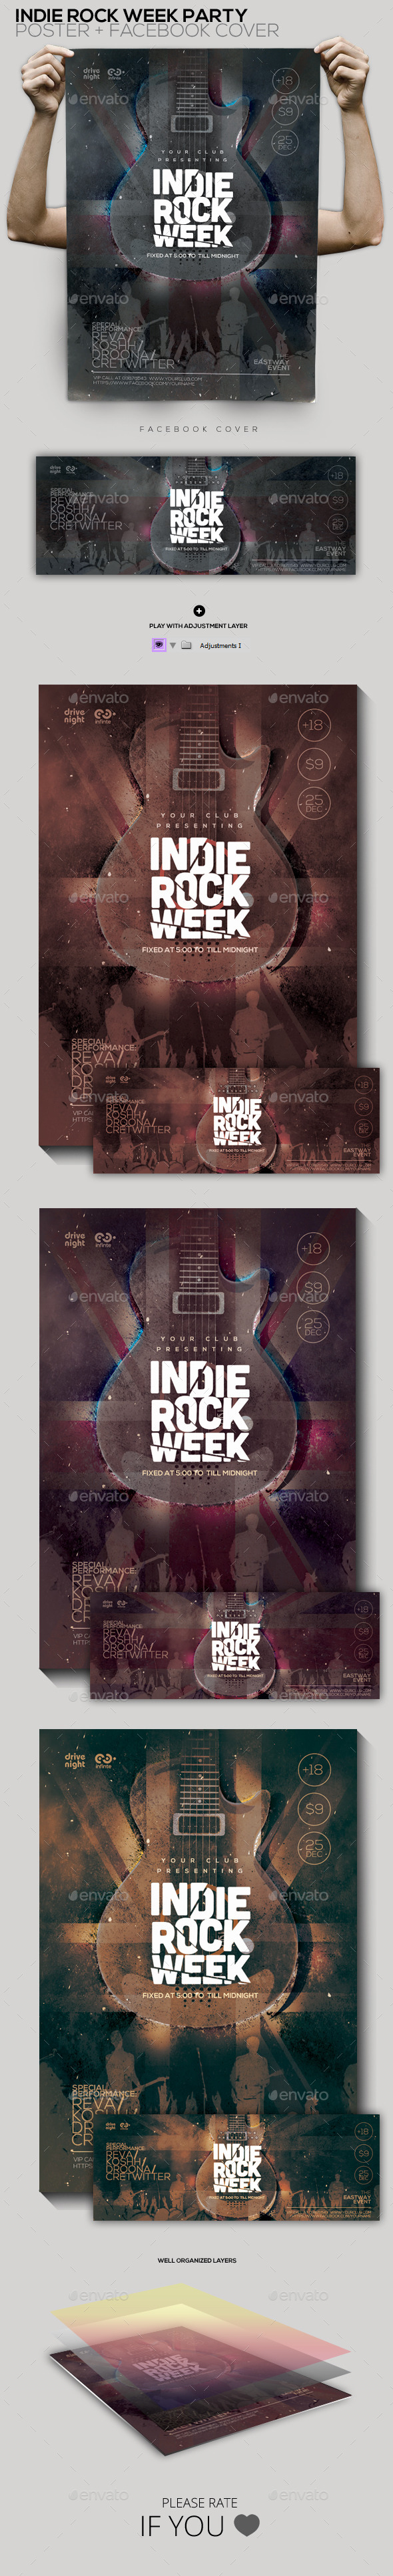 Indie Rock Week Party Poster/Facebook Cover - Concerts Events